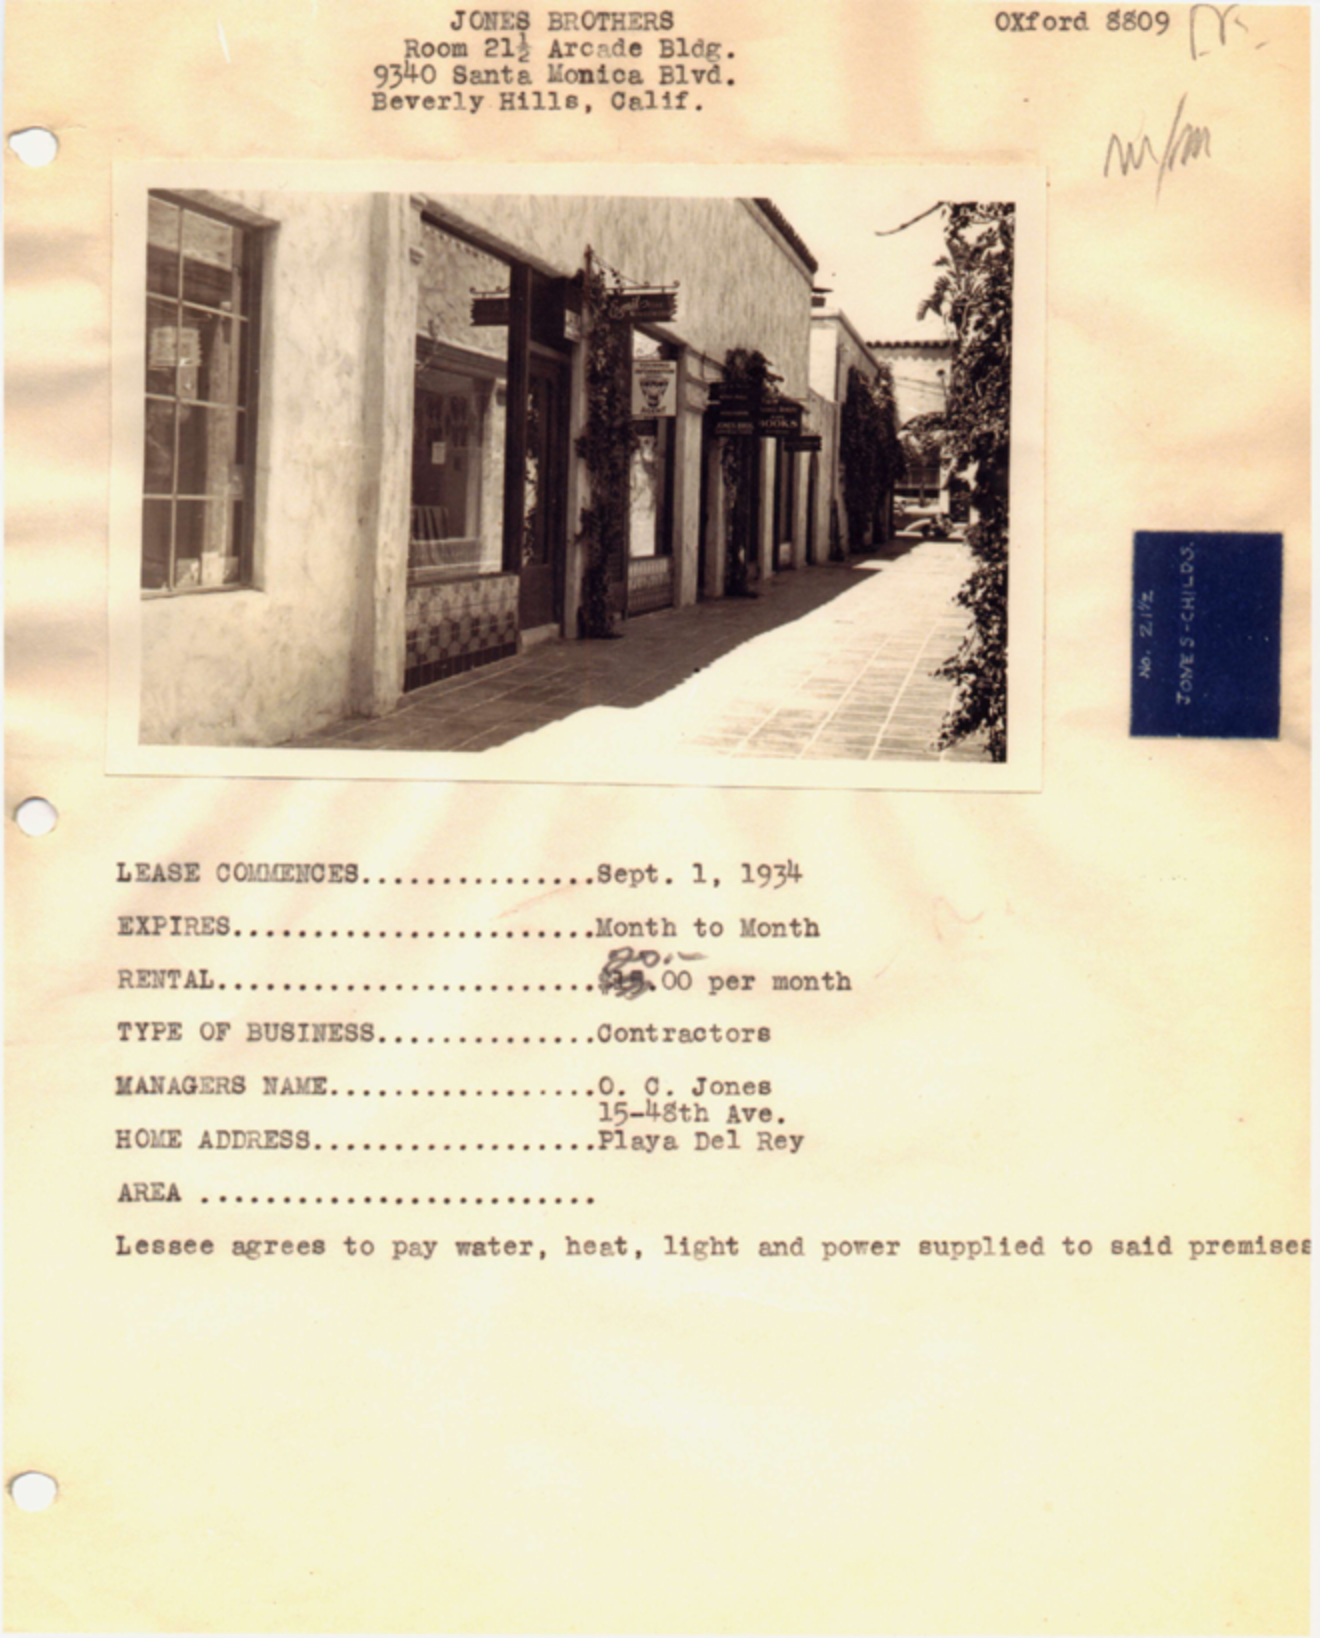 Jones Brothers Office Lease